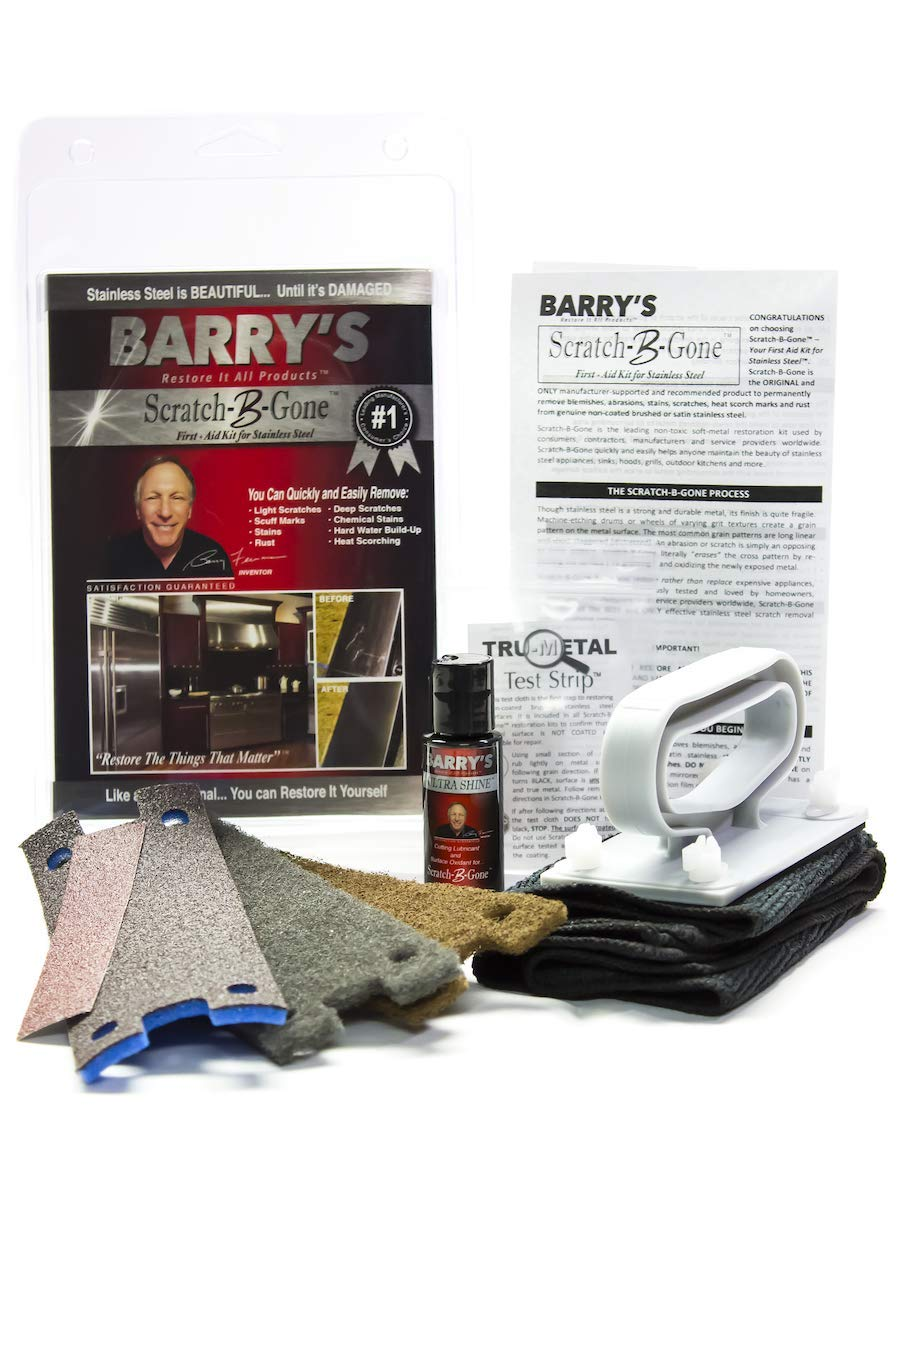 Barry's Restore It All Products - Scratch-B-Gone Homeowner Kit by Barry's Restore It All Products